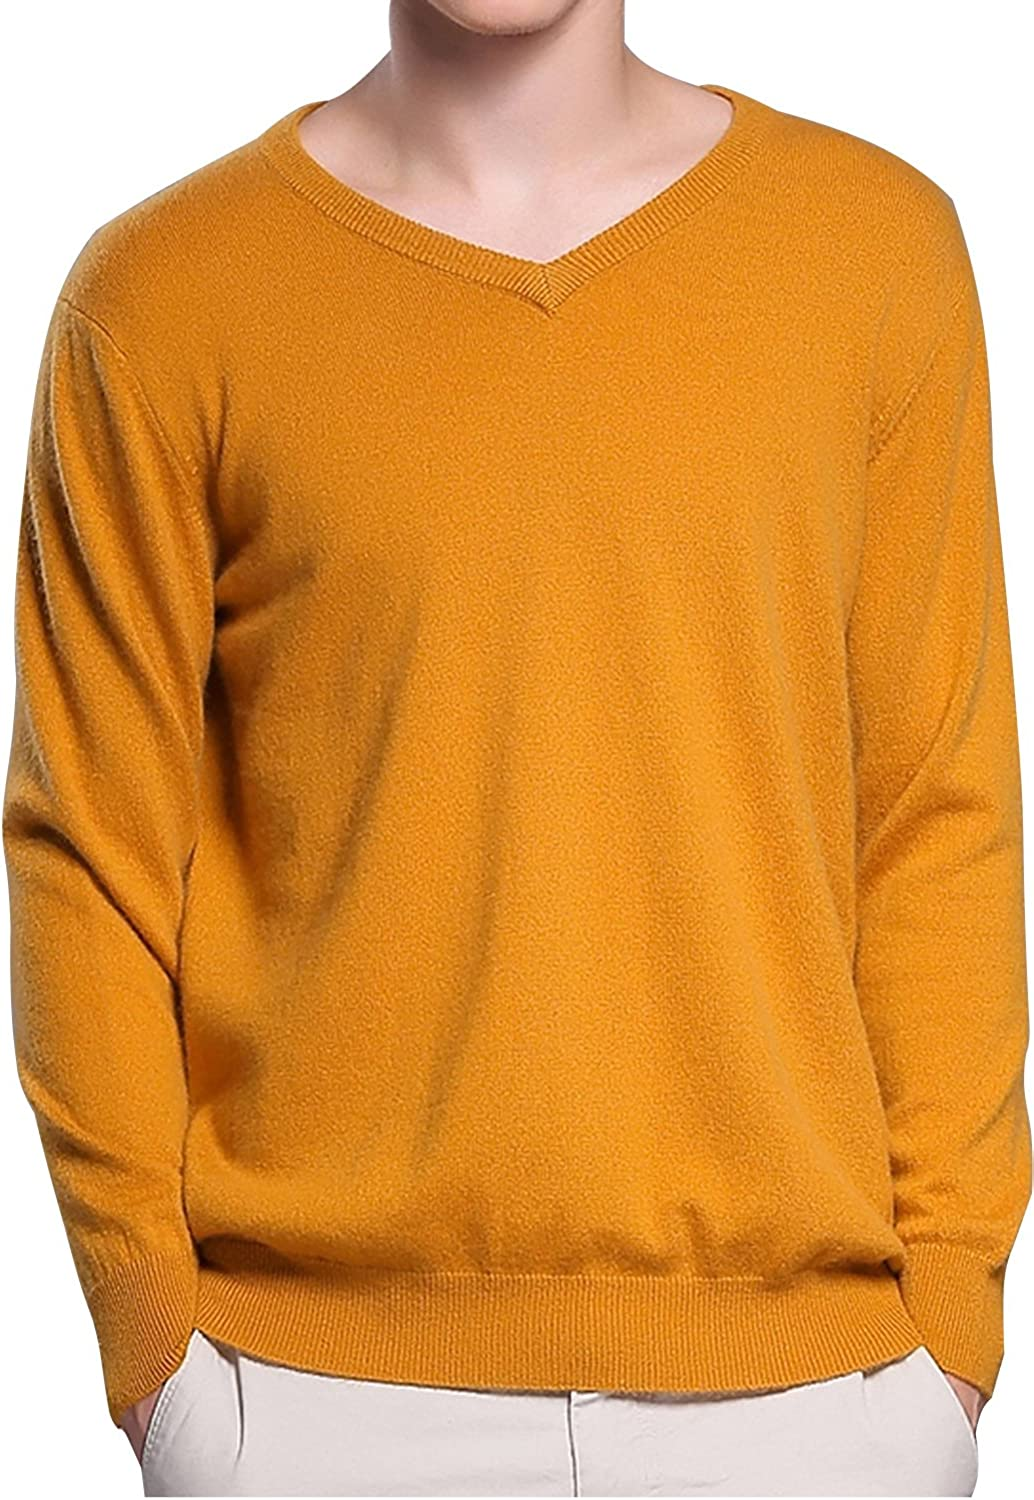 LONGMING Mens Casual Winter Cashmere Wool V-Neck Long Sleeve Pullover Sweater Warm Tops Ginger,S